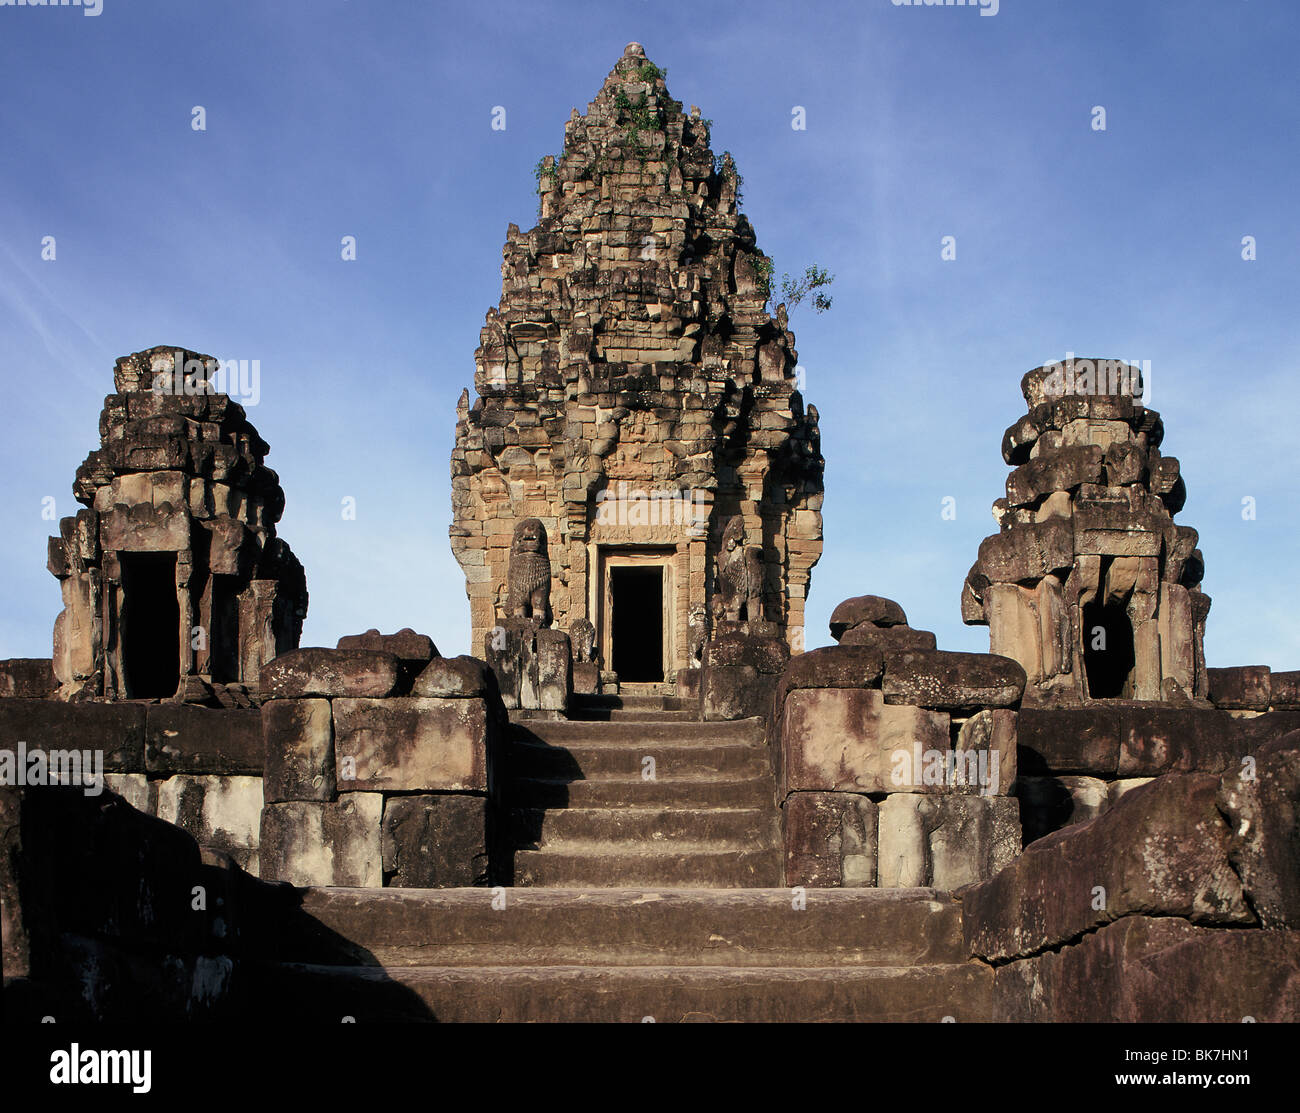 Bakong, dating from the late 9th century, Roluos, near Siem Reap, Cambodia, Indochina, Southeast Asia, Asia - Stock Image